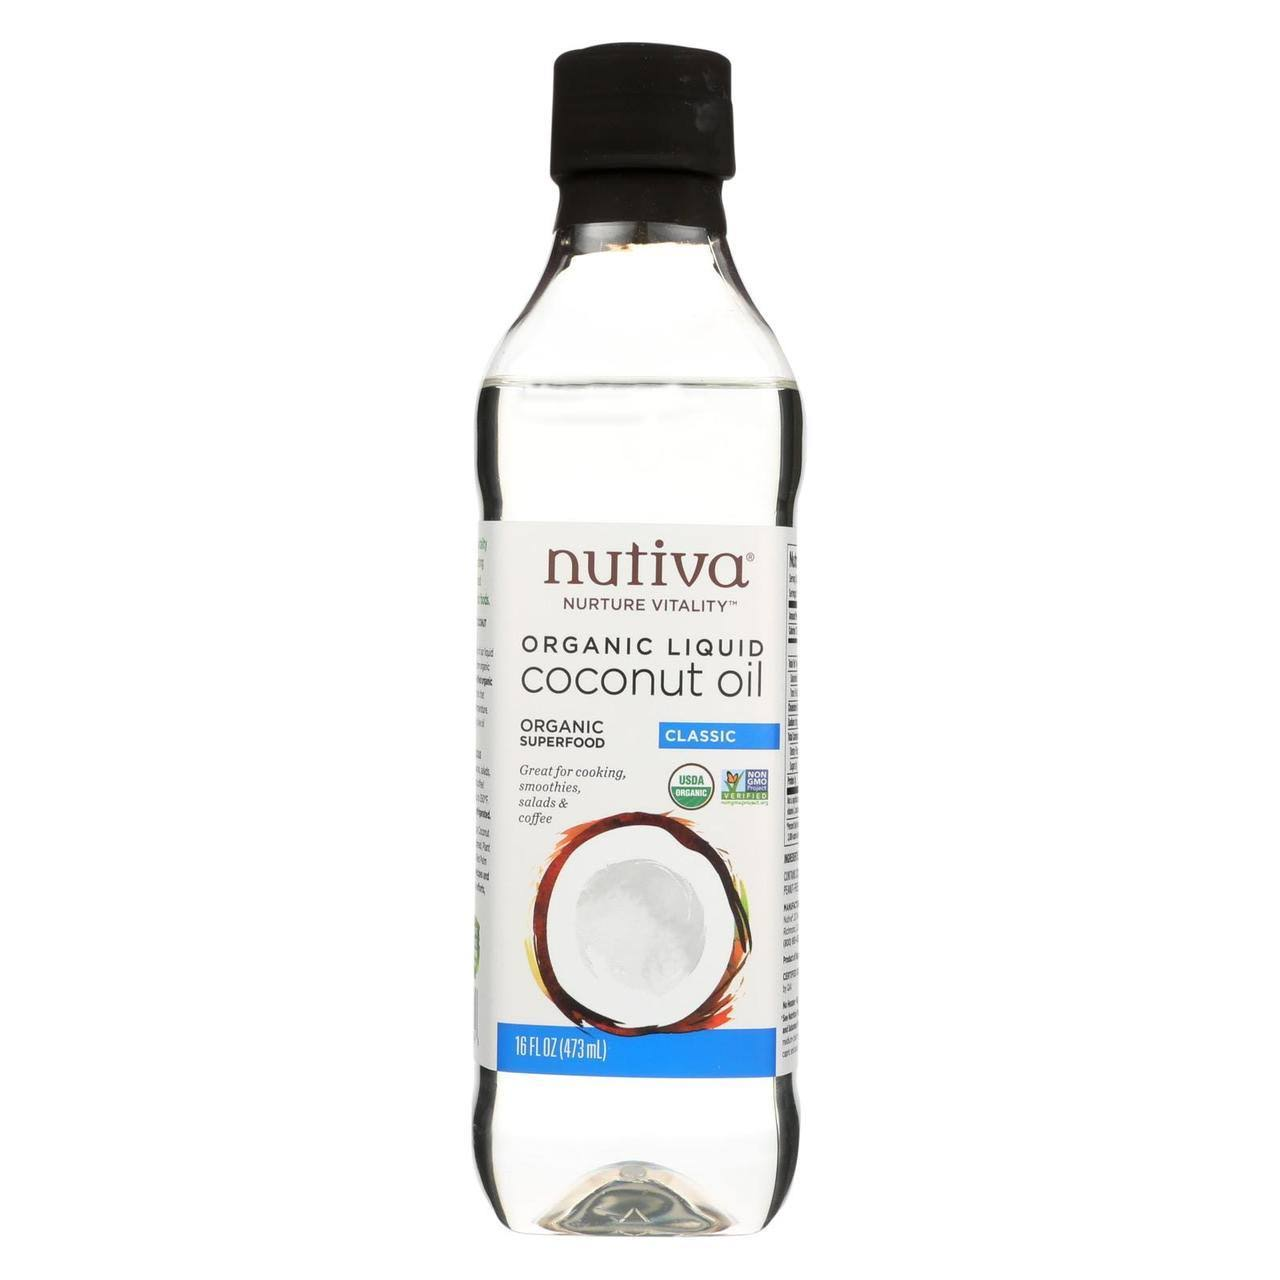 Nutiva Organic Liquid Coconut Oil - Classic, 16oz